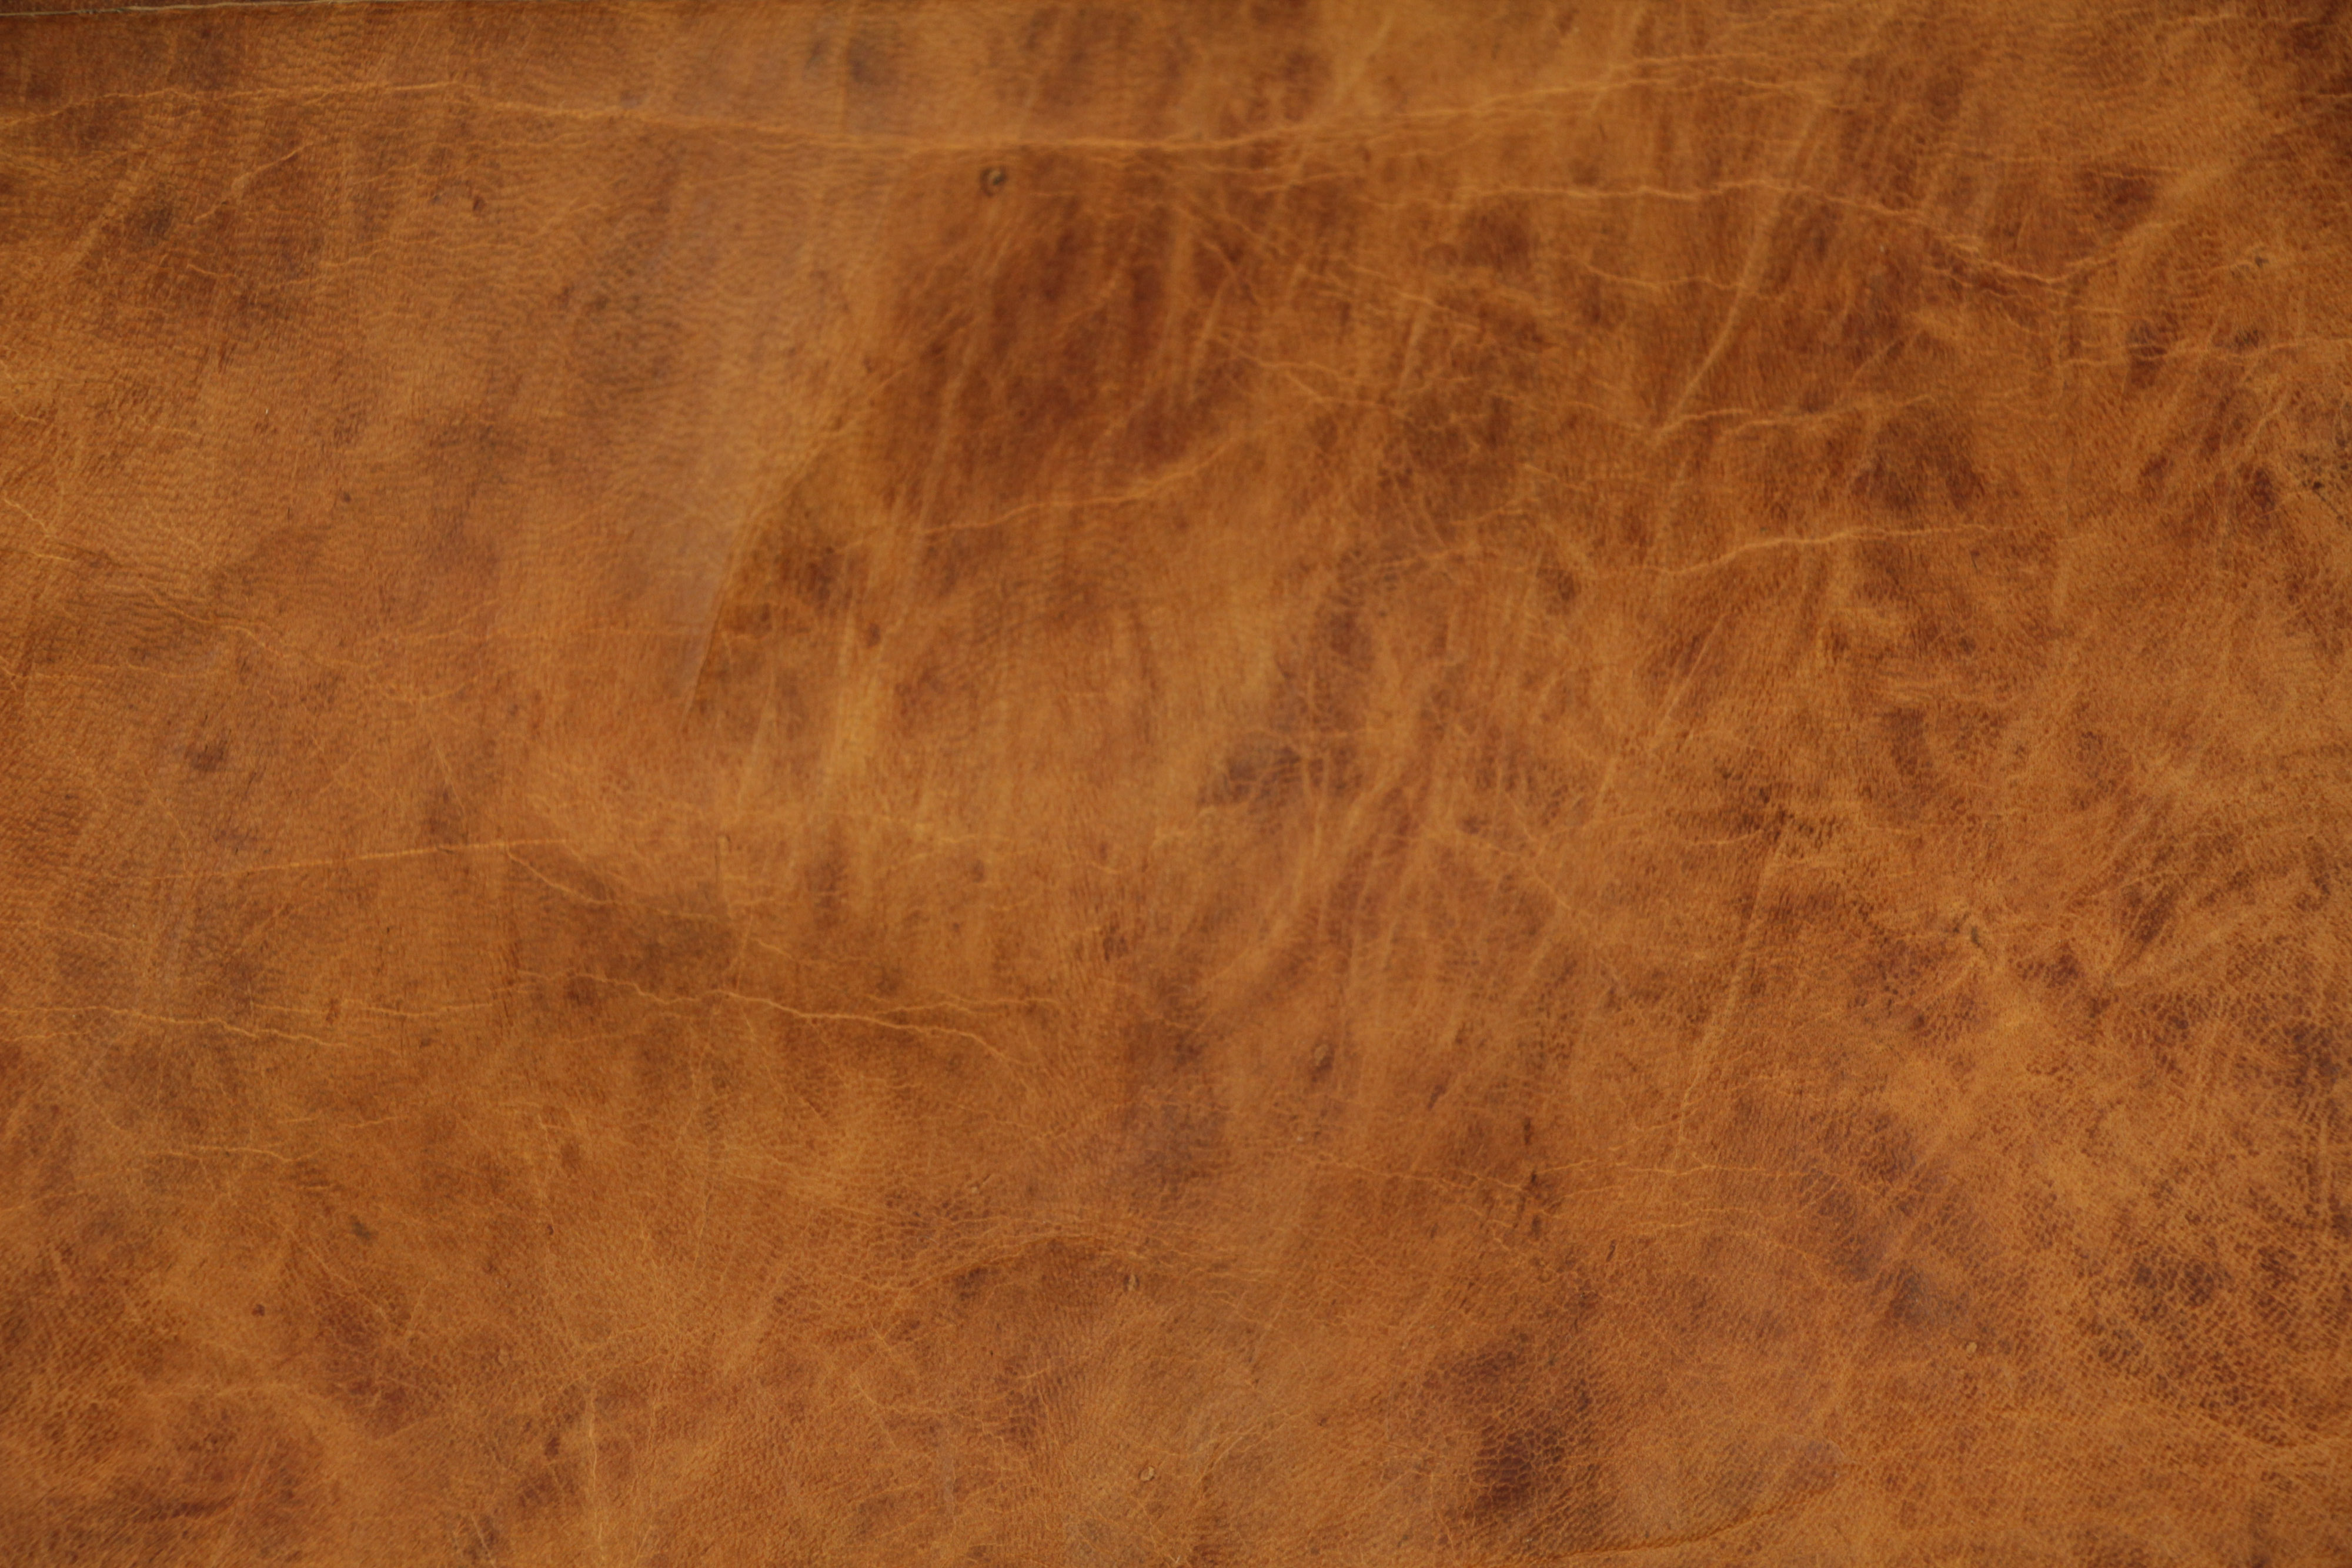 leather texture brown soft smooth old finish material